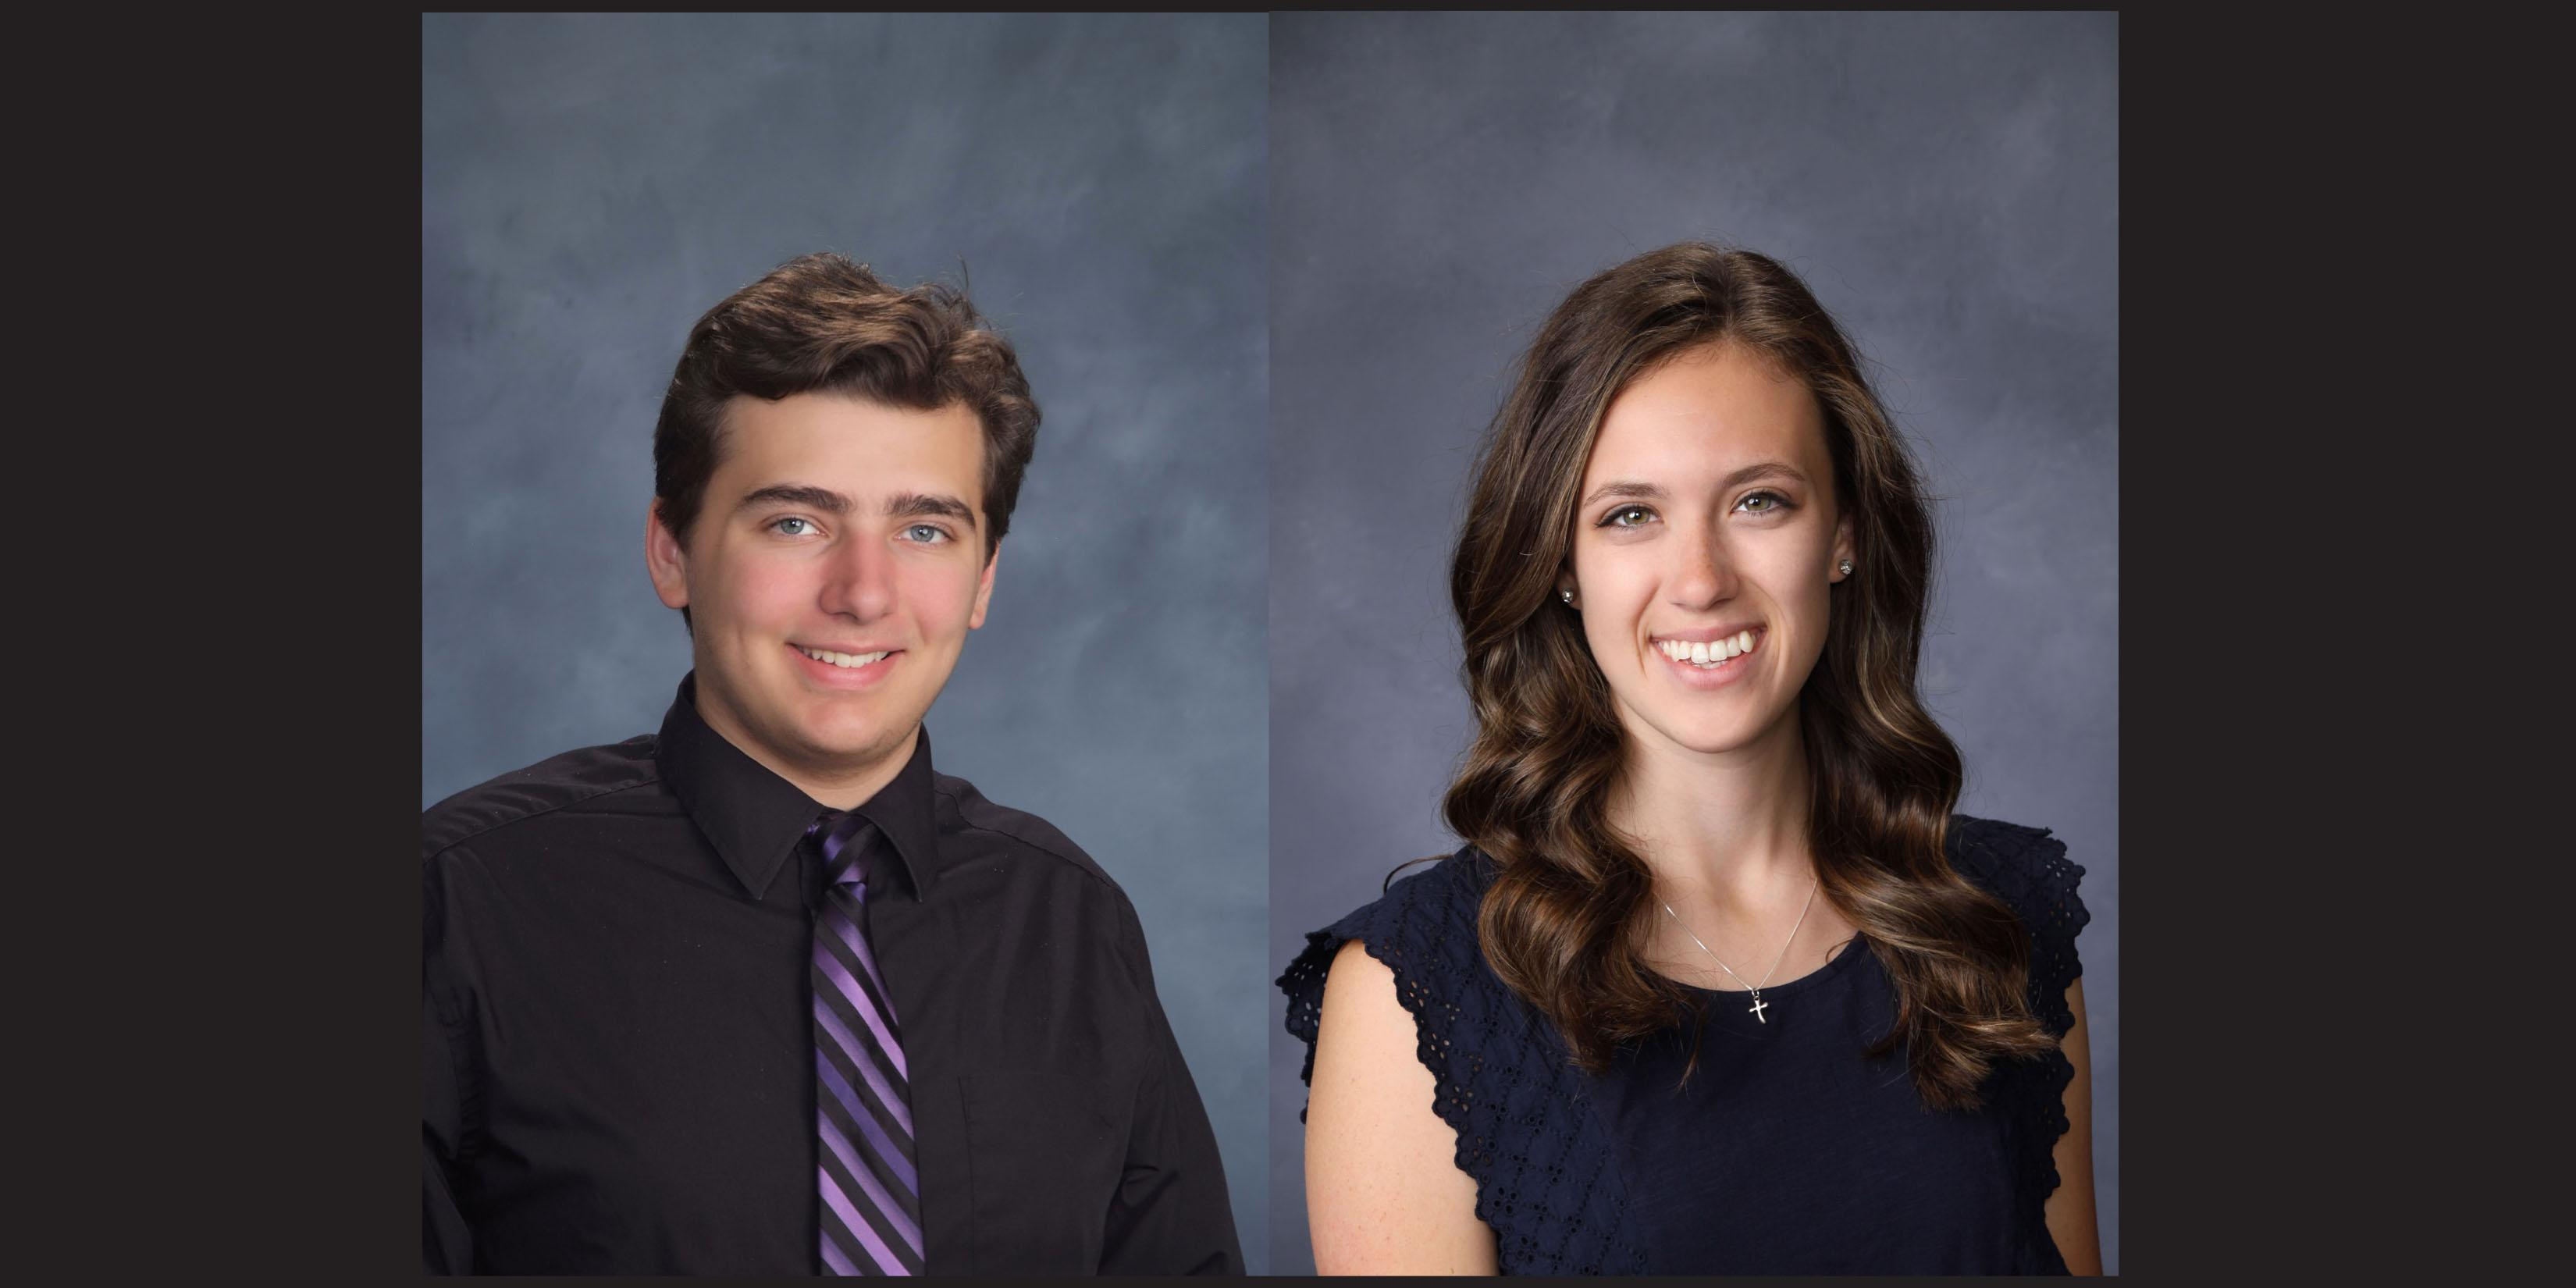 Two members of the Willowbrook class of 2018 named to 2017-18 DuPage County Daily Herald Academic Team